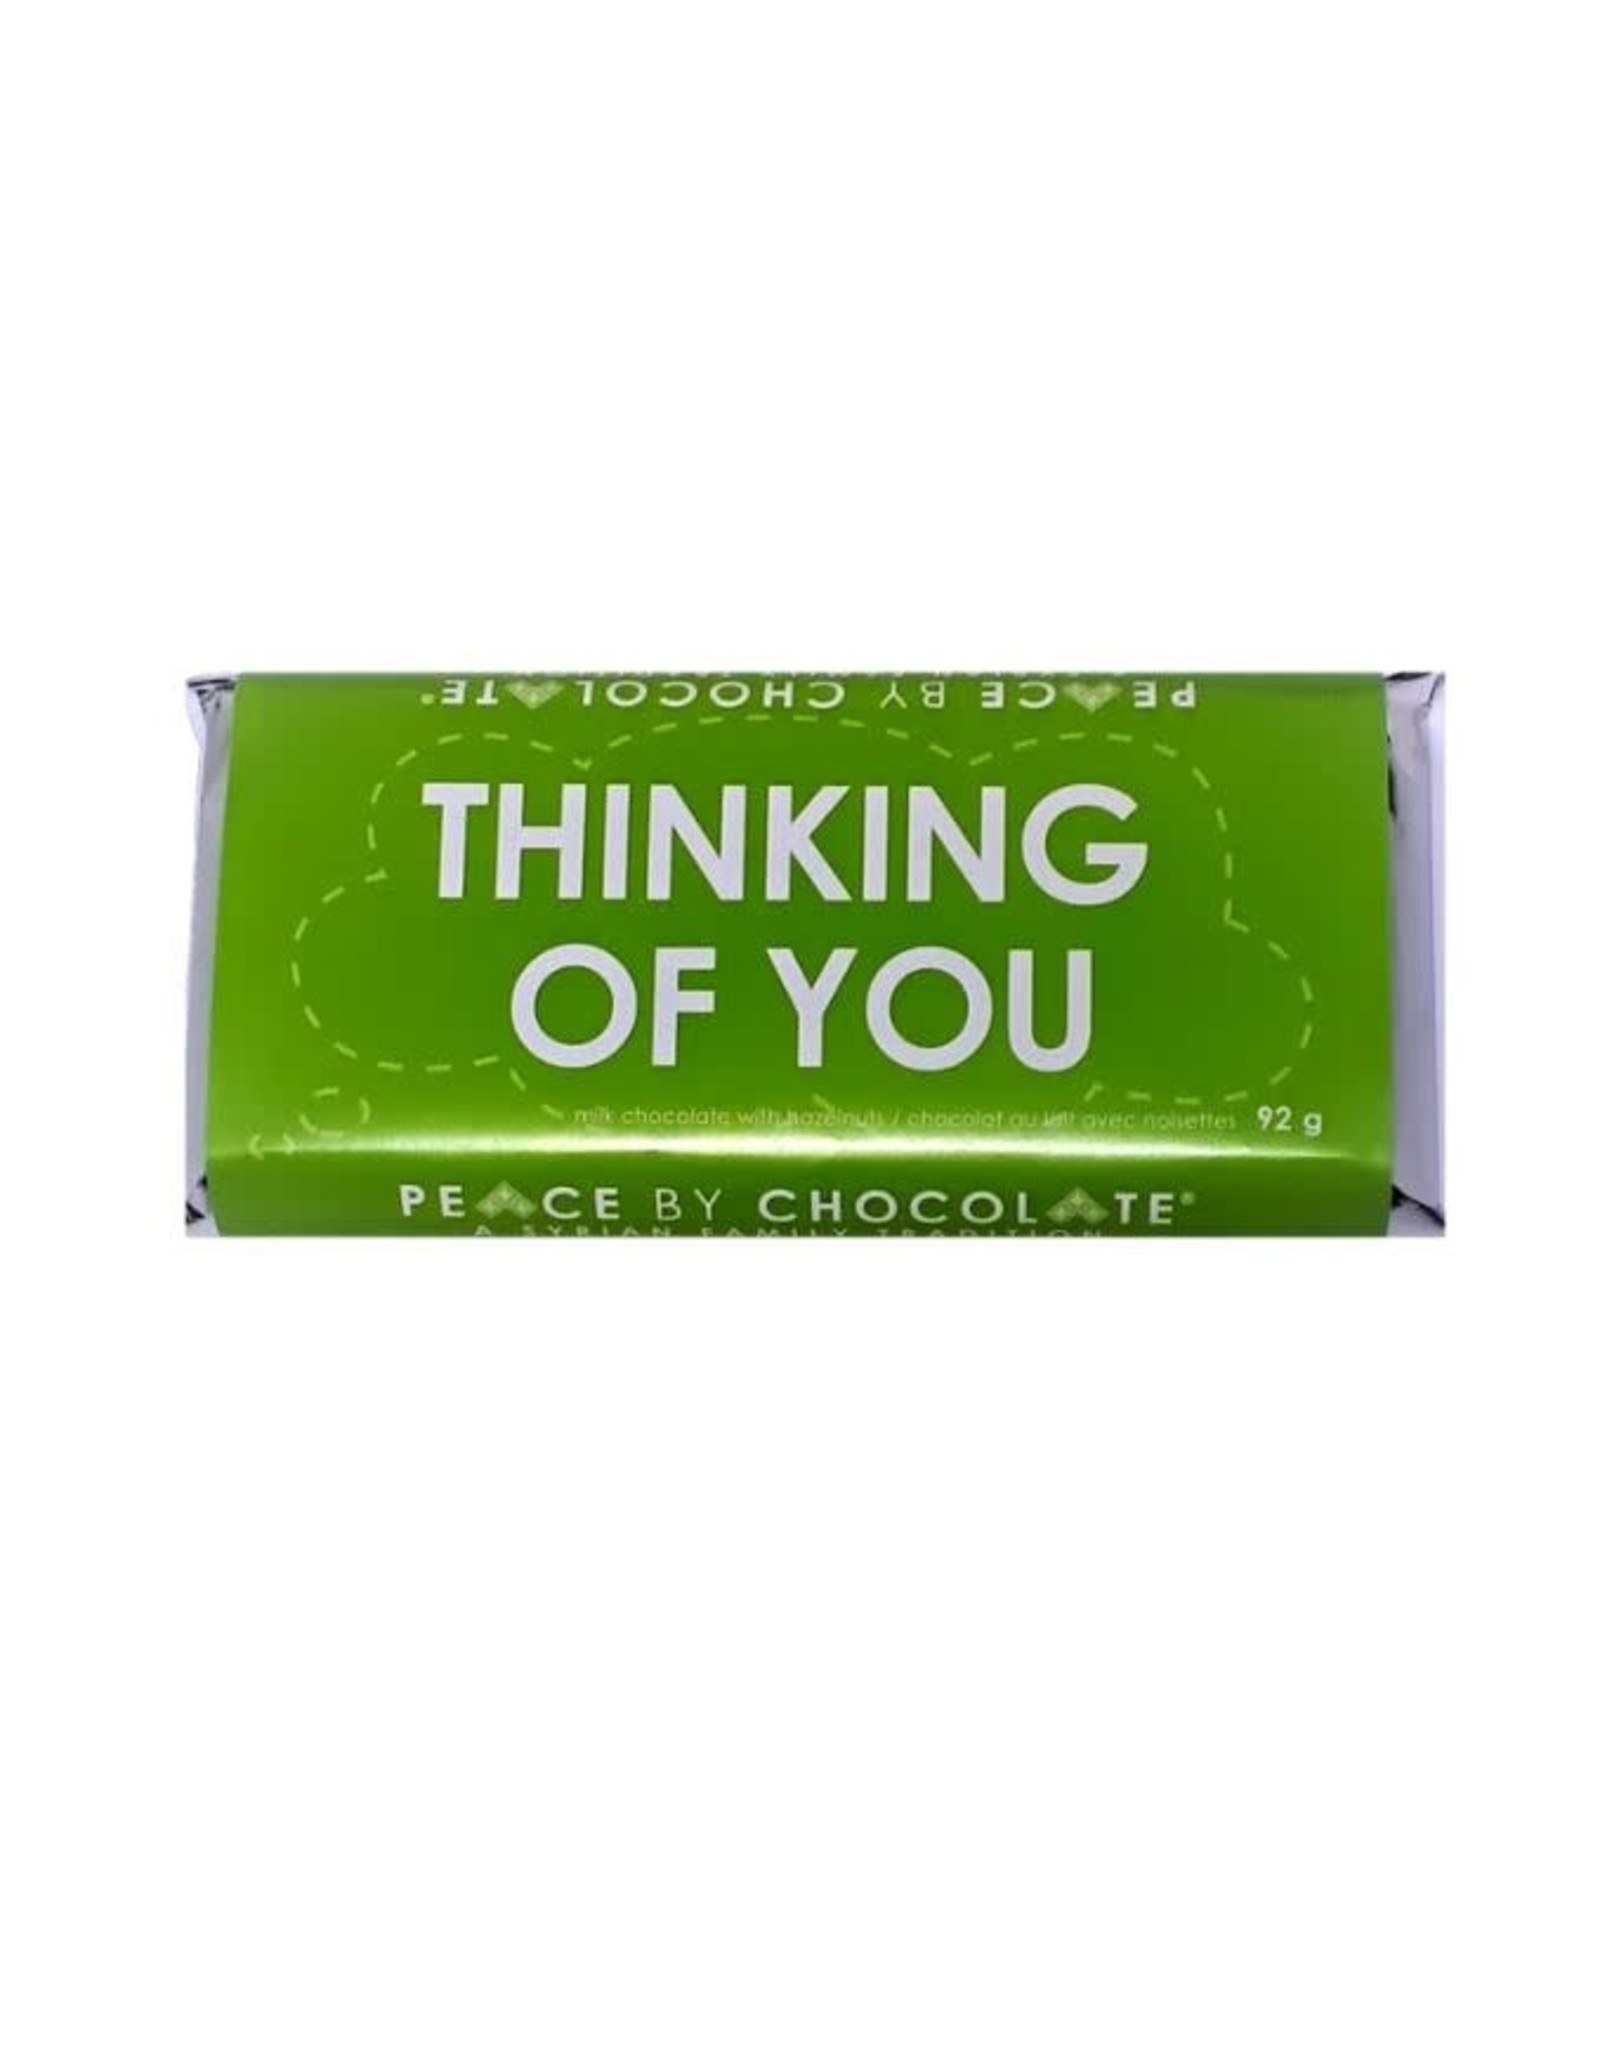 Peace by Chocolate Thinking of You Bar, 92g.  Canada